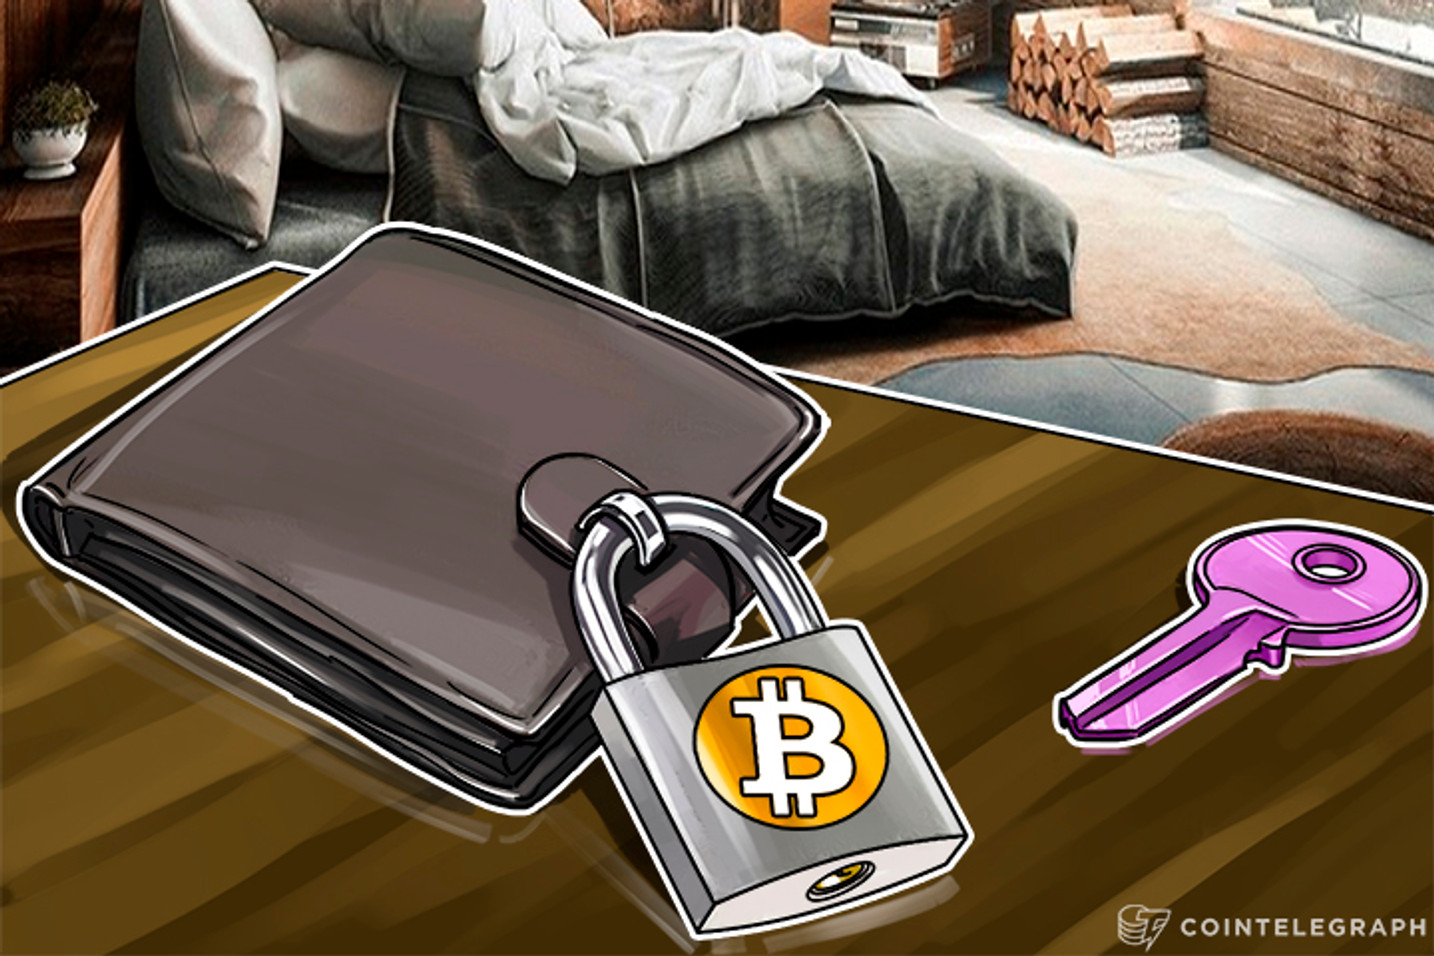 Multisig Best for Bitcoin Wallet Security But Only 11 Percent Use It